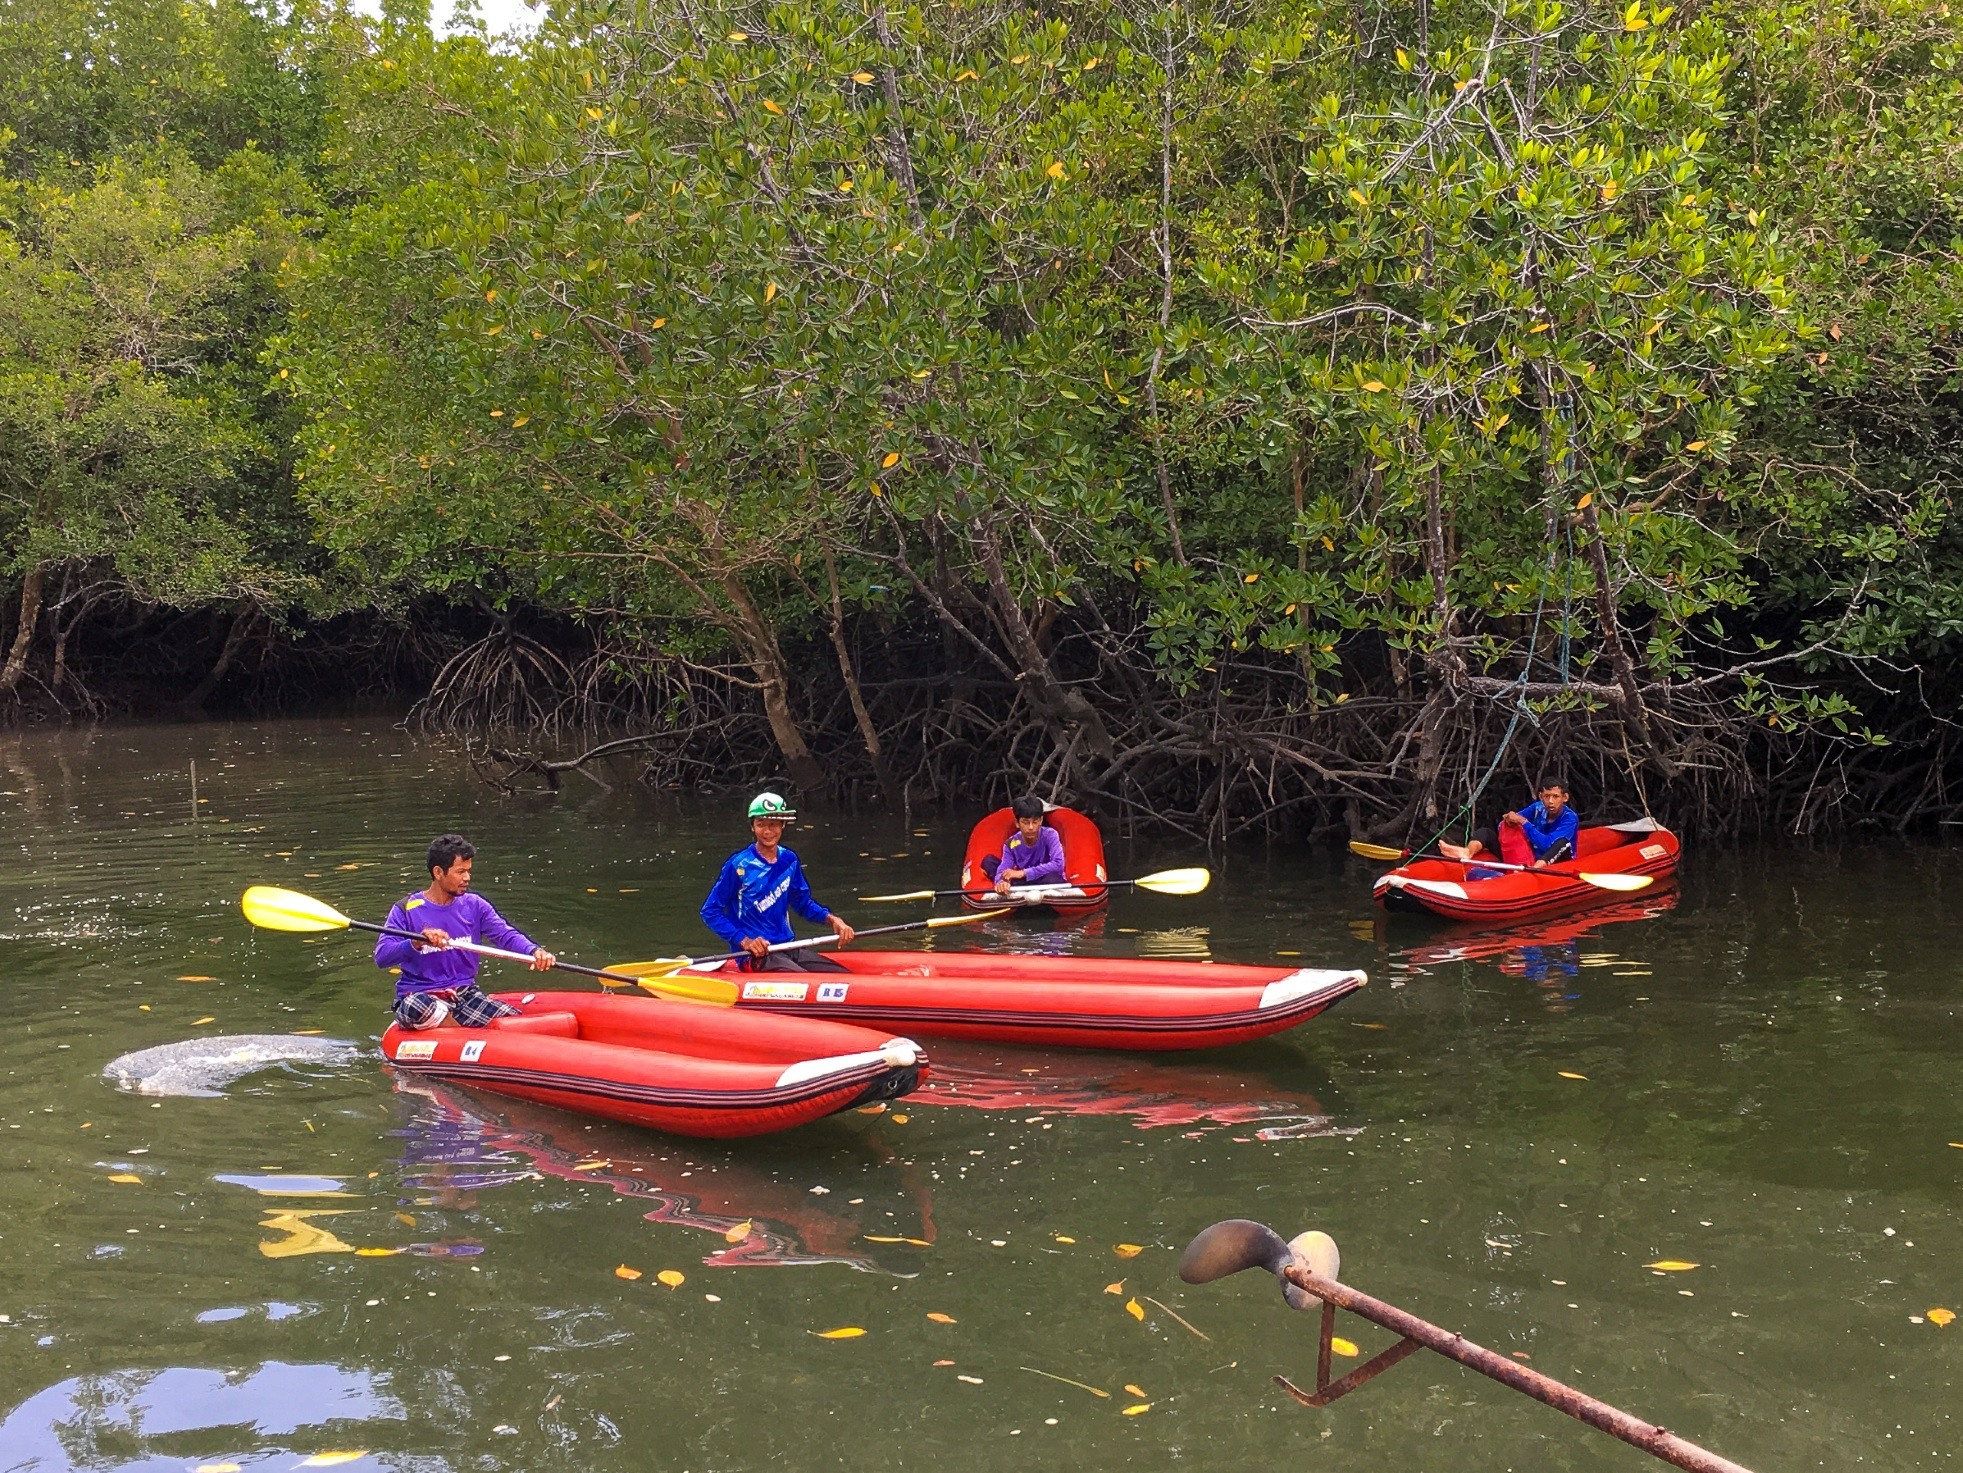 Canoeing At The Mangrove Swamp, Phang Nga Bay